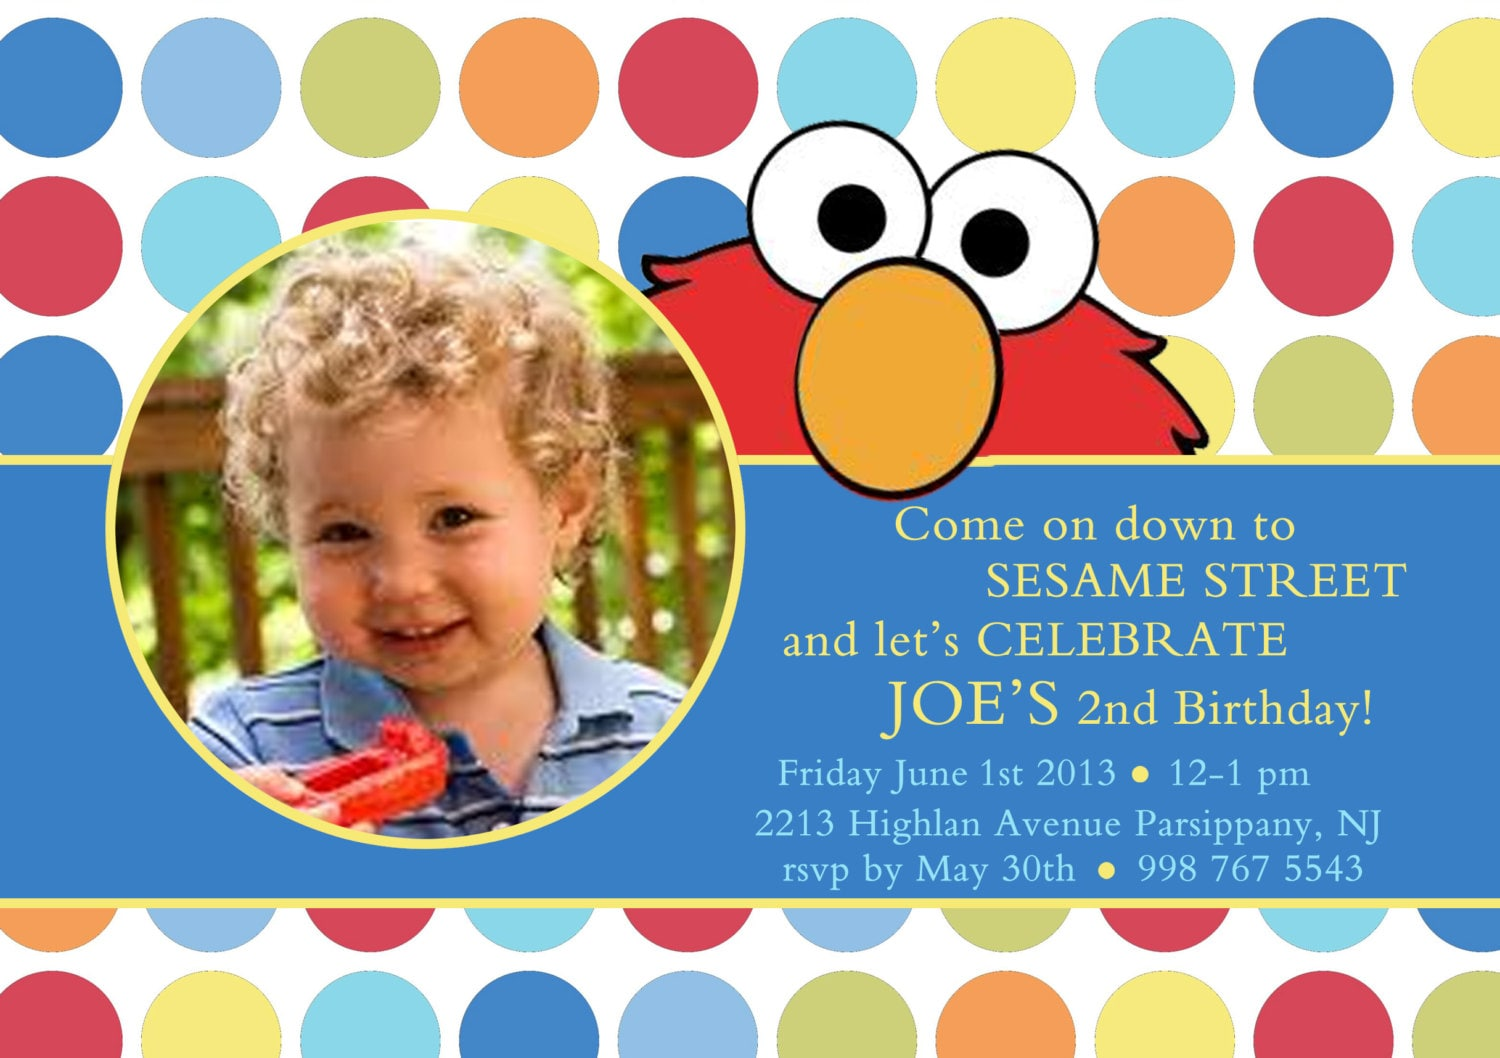 personalised birthday invitations for kids - Gidiye.redformapolitica.co